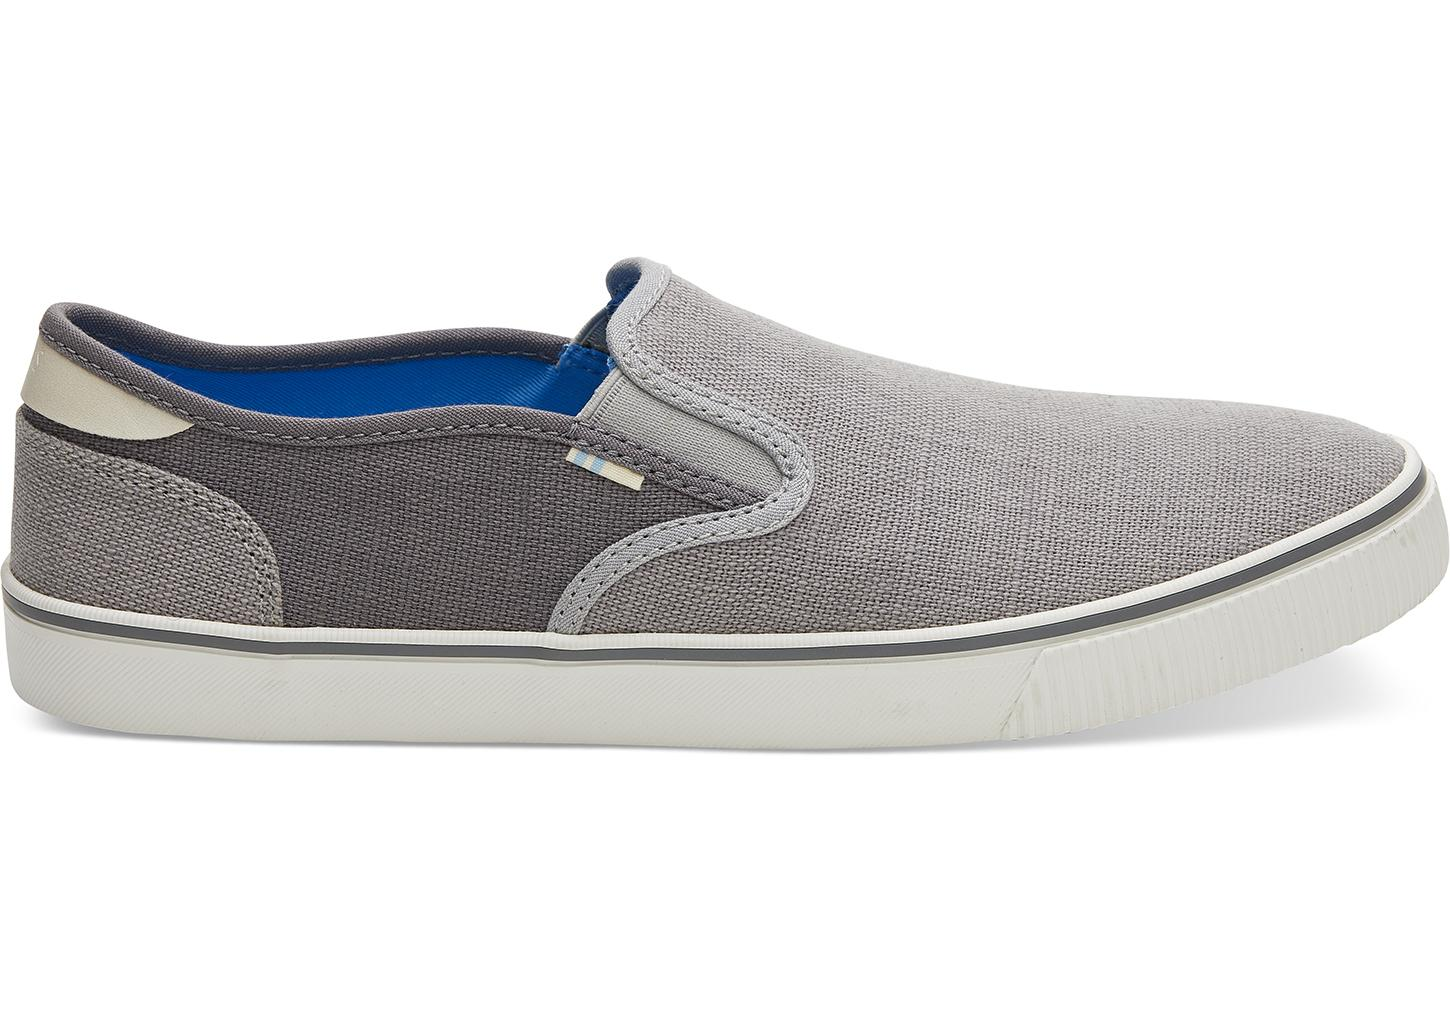 a6eaf02d931 TOMS. Gray Drizzle Grey And Shade Heritage Canvas Mens Baja Slip-ons Topanga  Collection